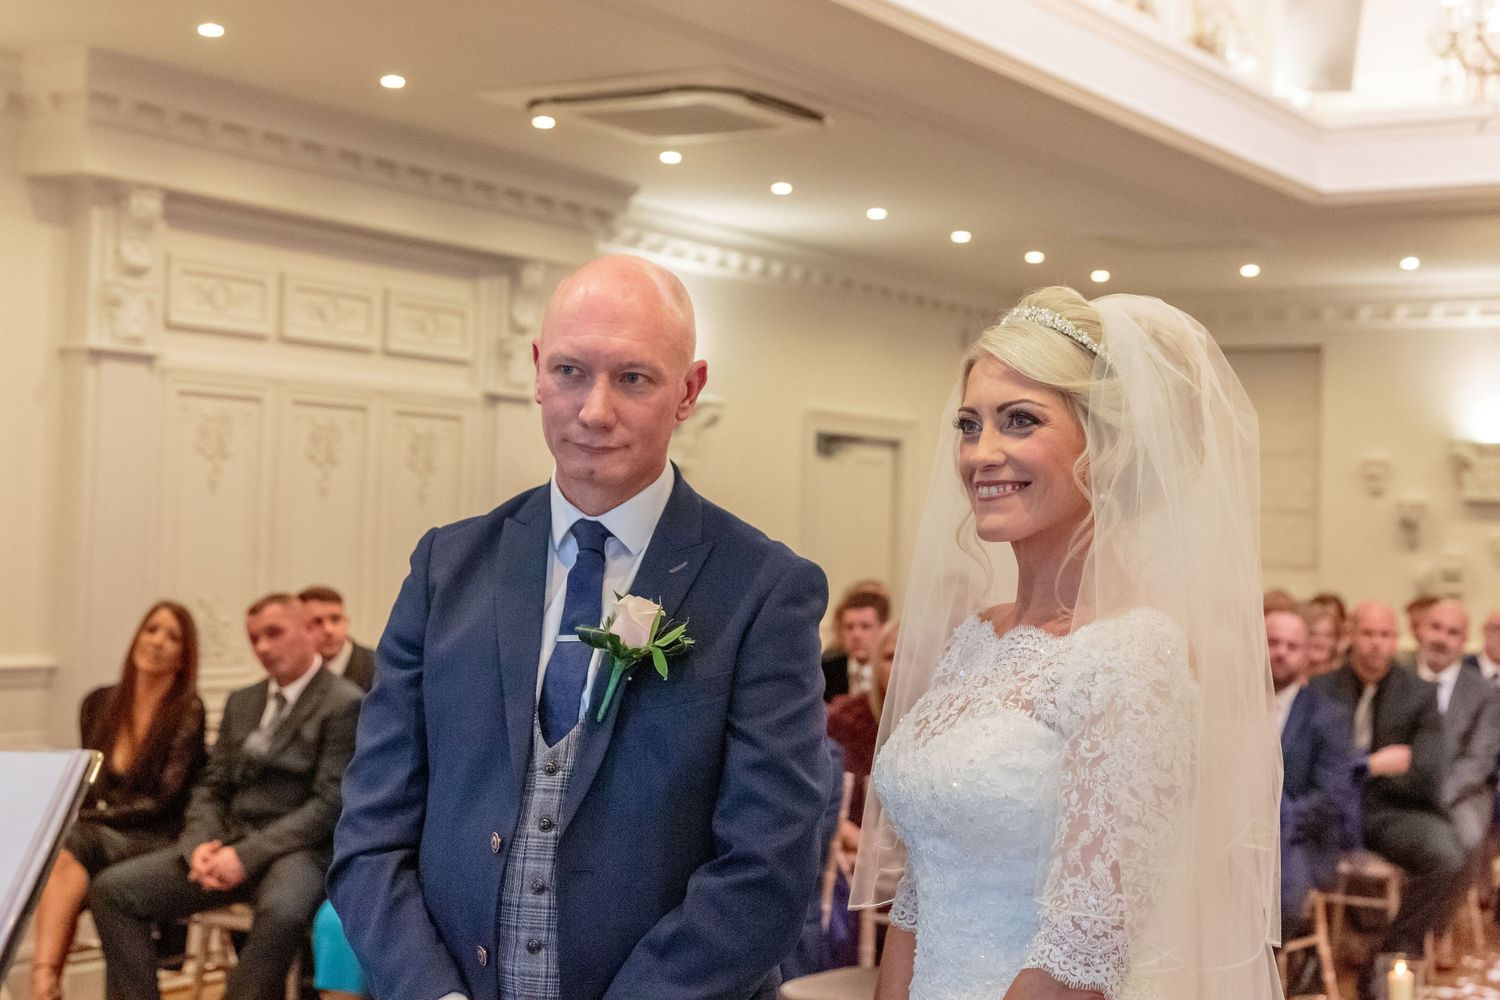 bride and groom smiling at the front of the room in front of all their guests